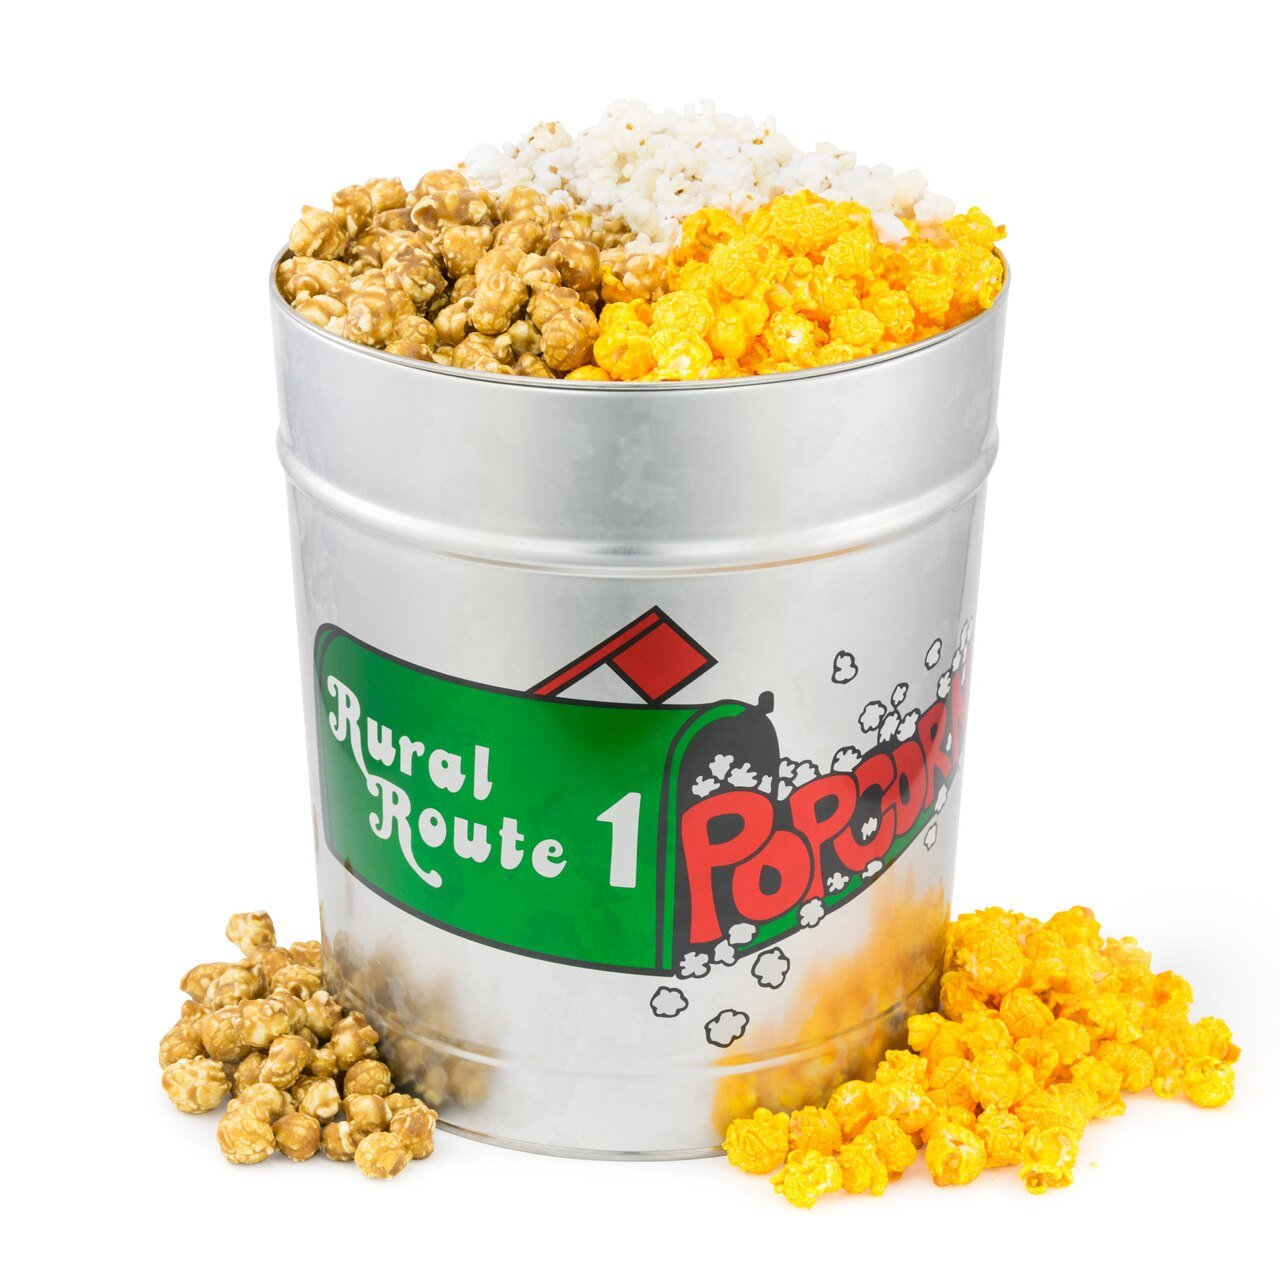 Rural Route 1 Popcorn Combo - 3 Gallon Tin available on WisconsinMade Artisan Collective